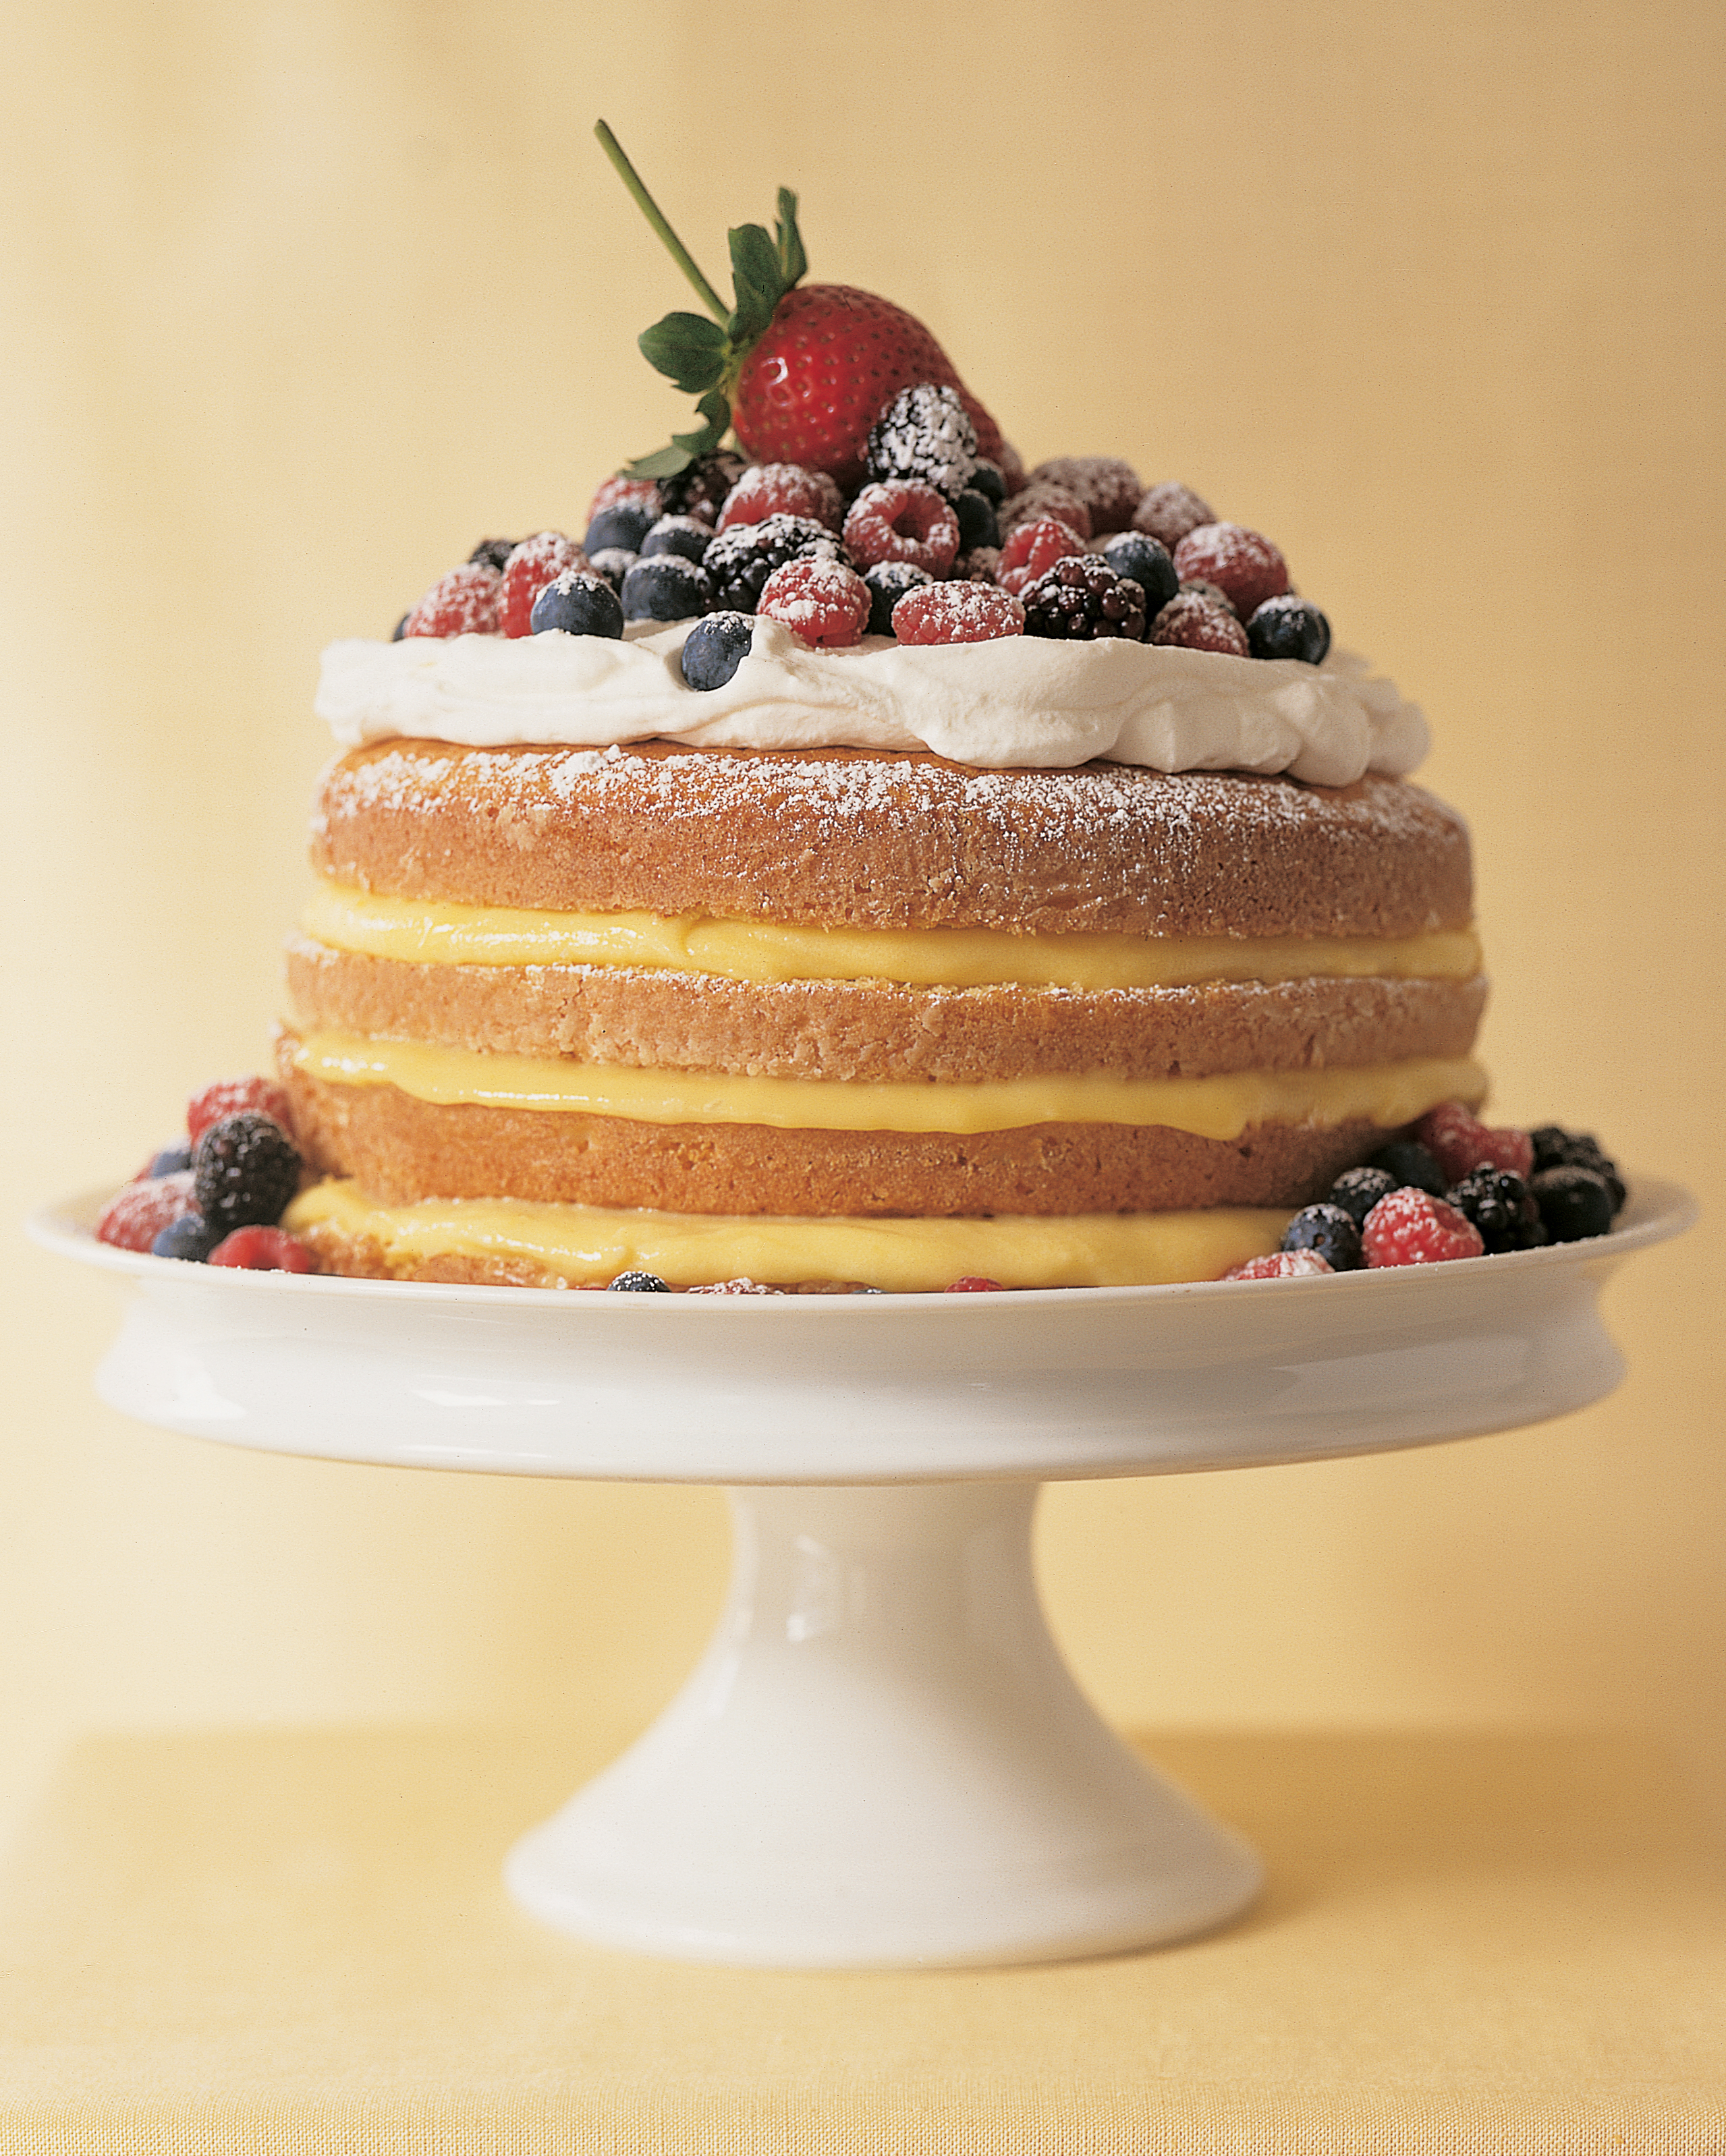 Wedding Cake with Berries, Grapes, Figs, and Pears